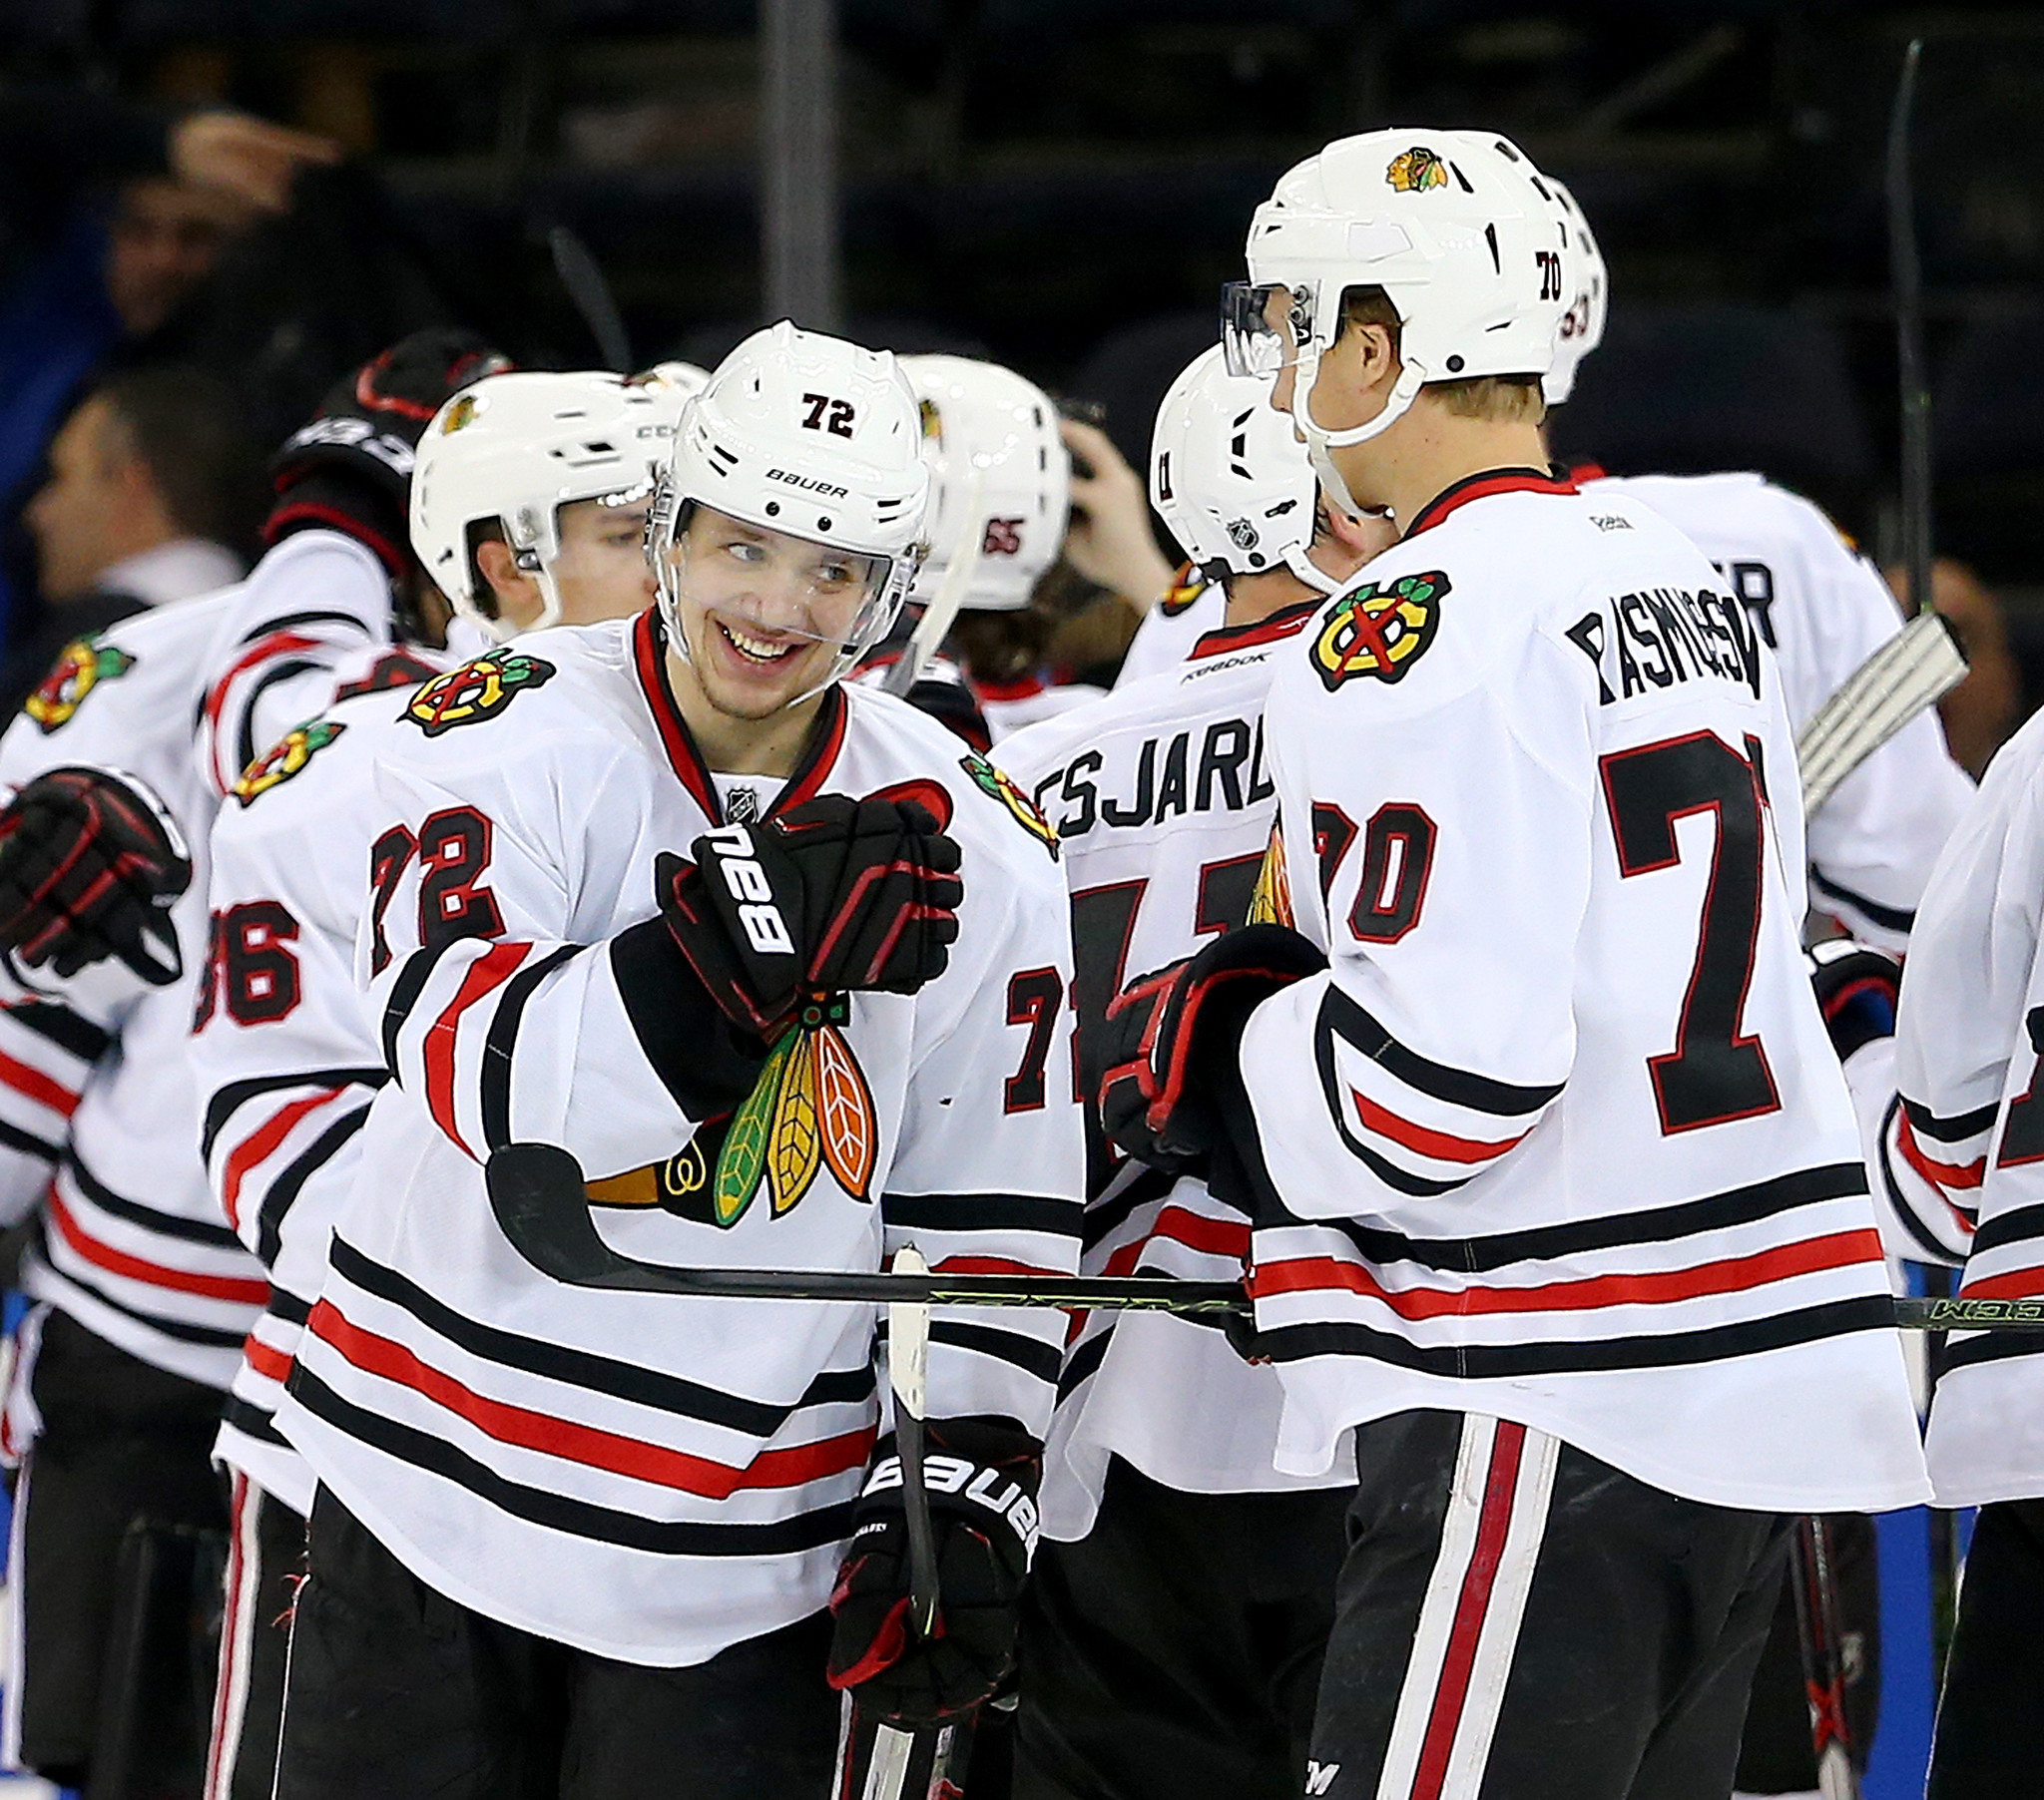 Observations from the Blackhawks' 5-3 win